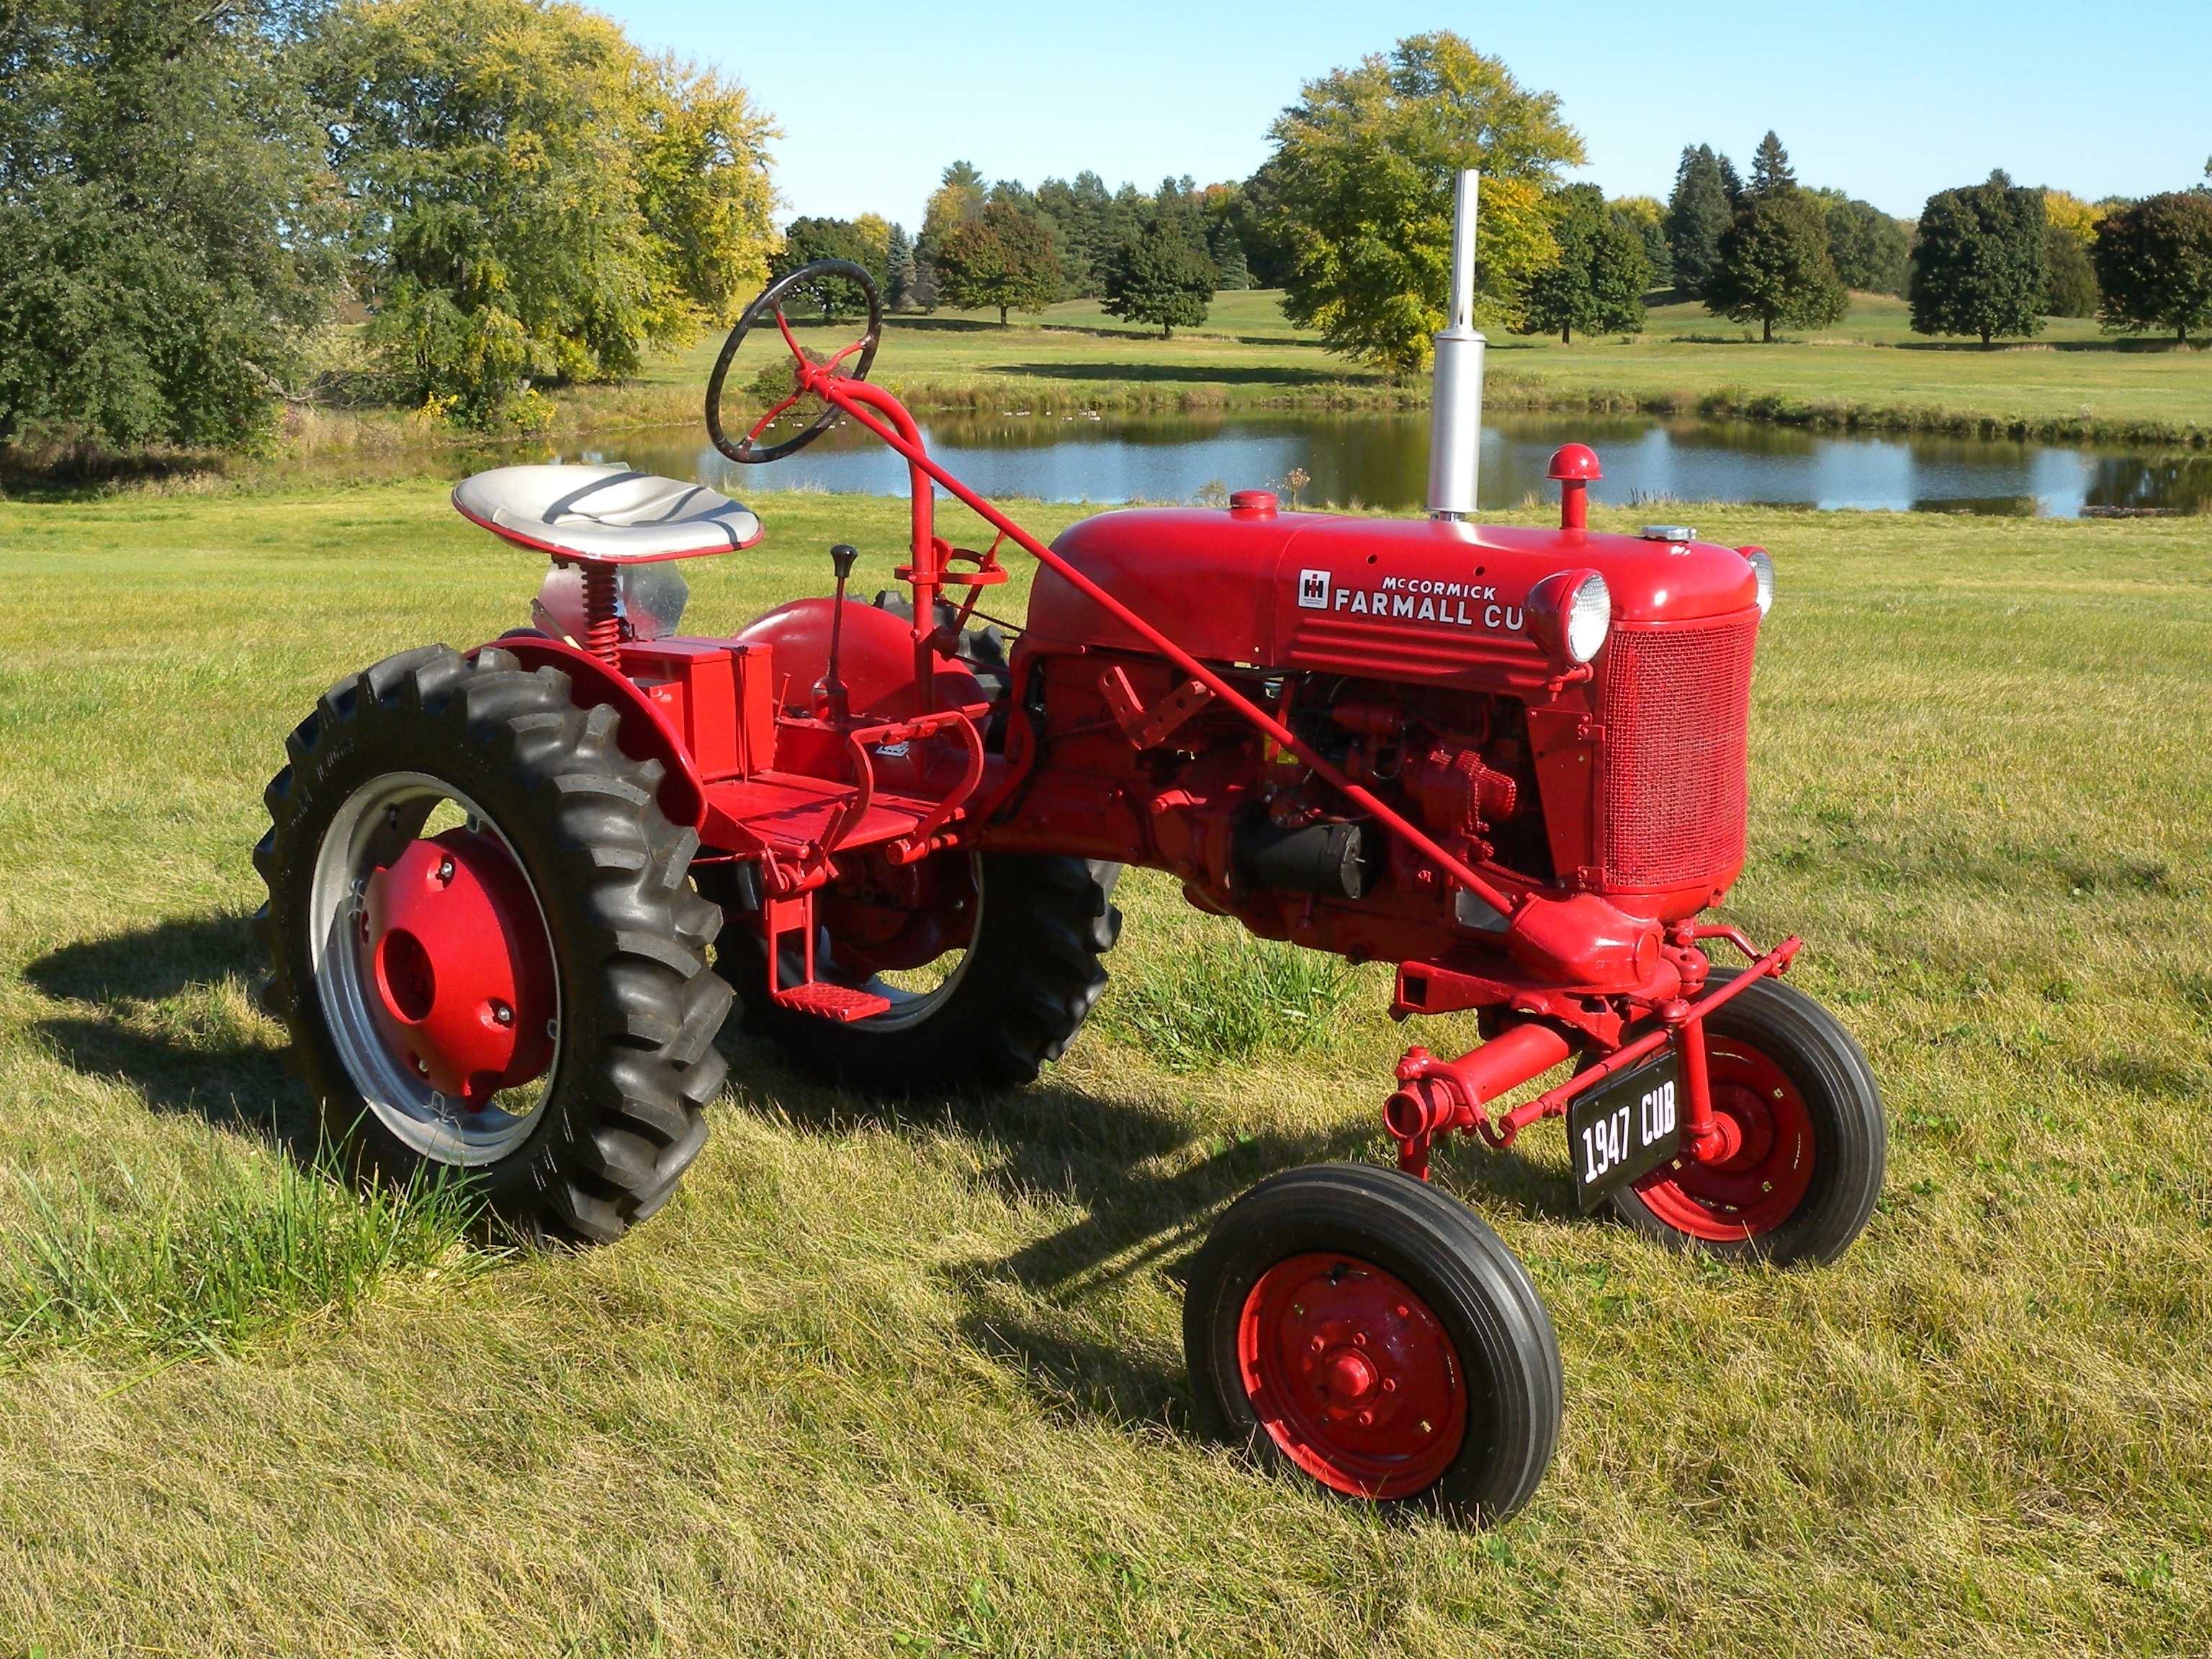 Tractor Restoration Parts : Farmall cub antique tractor